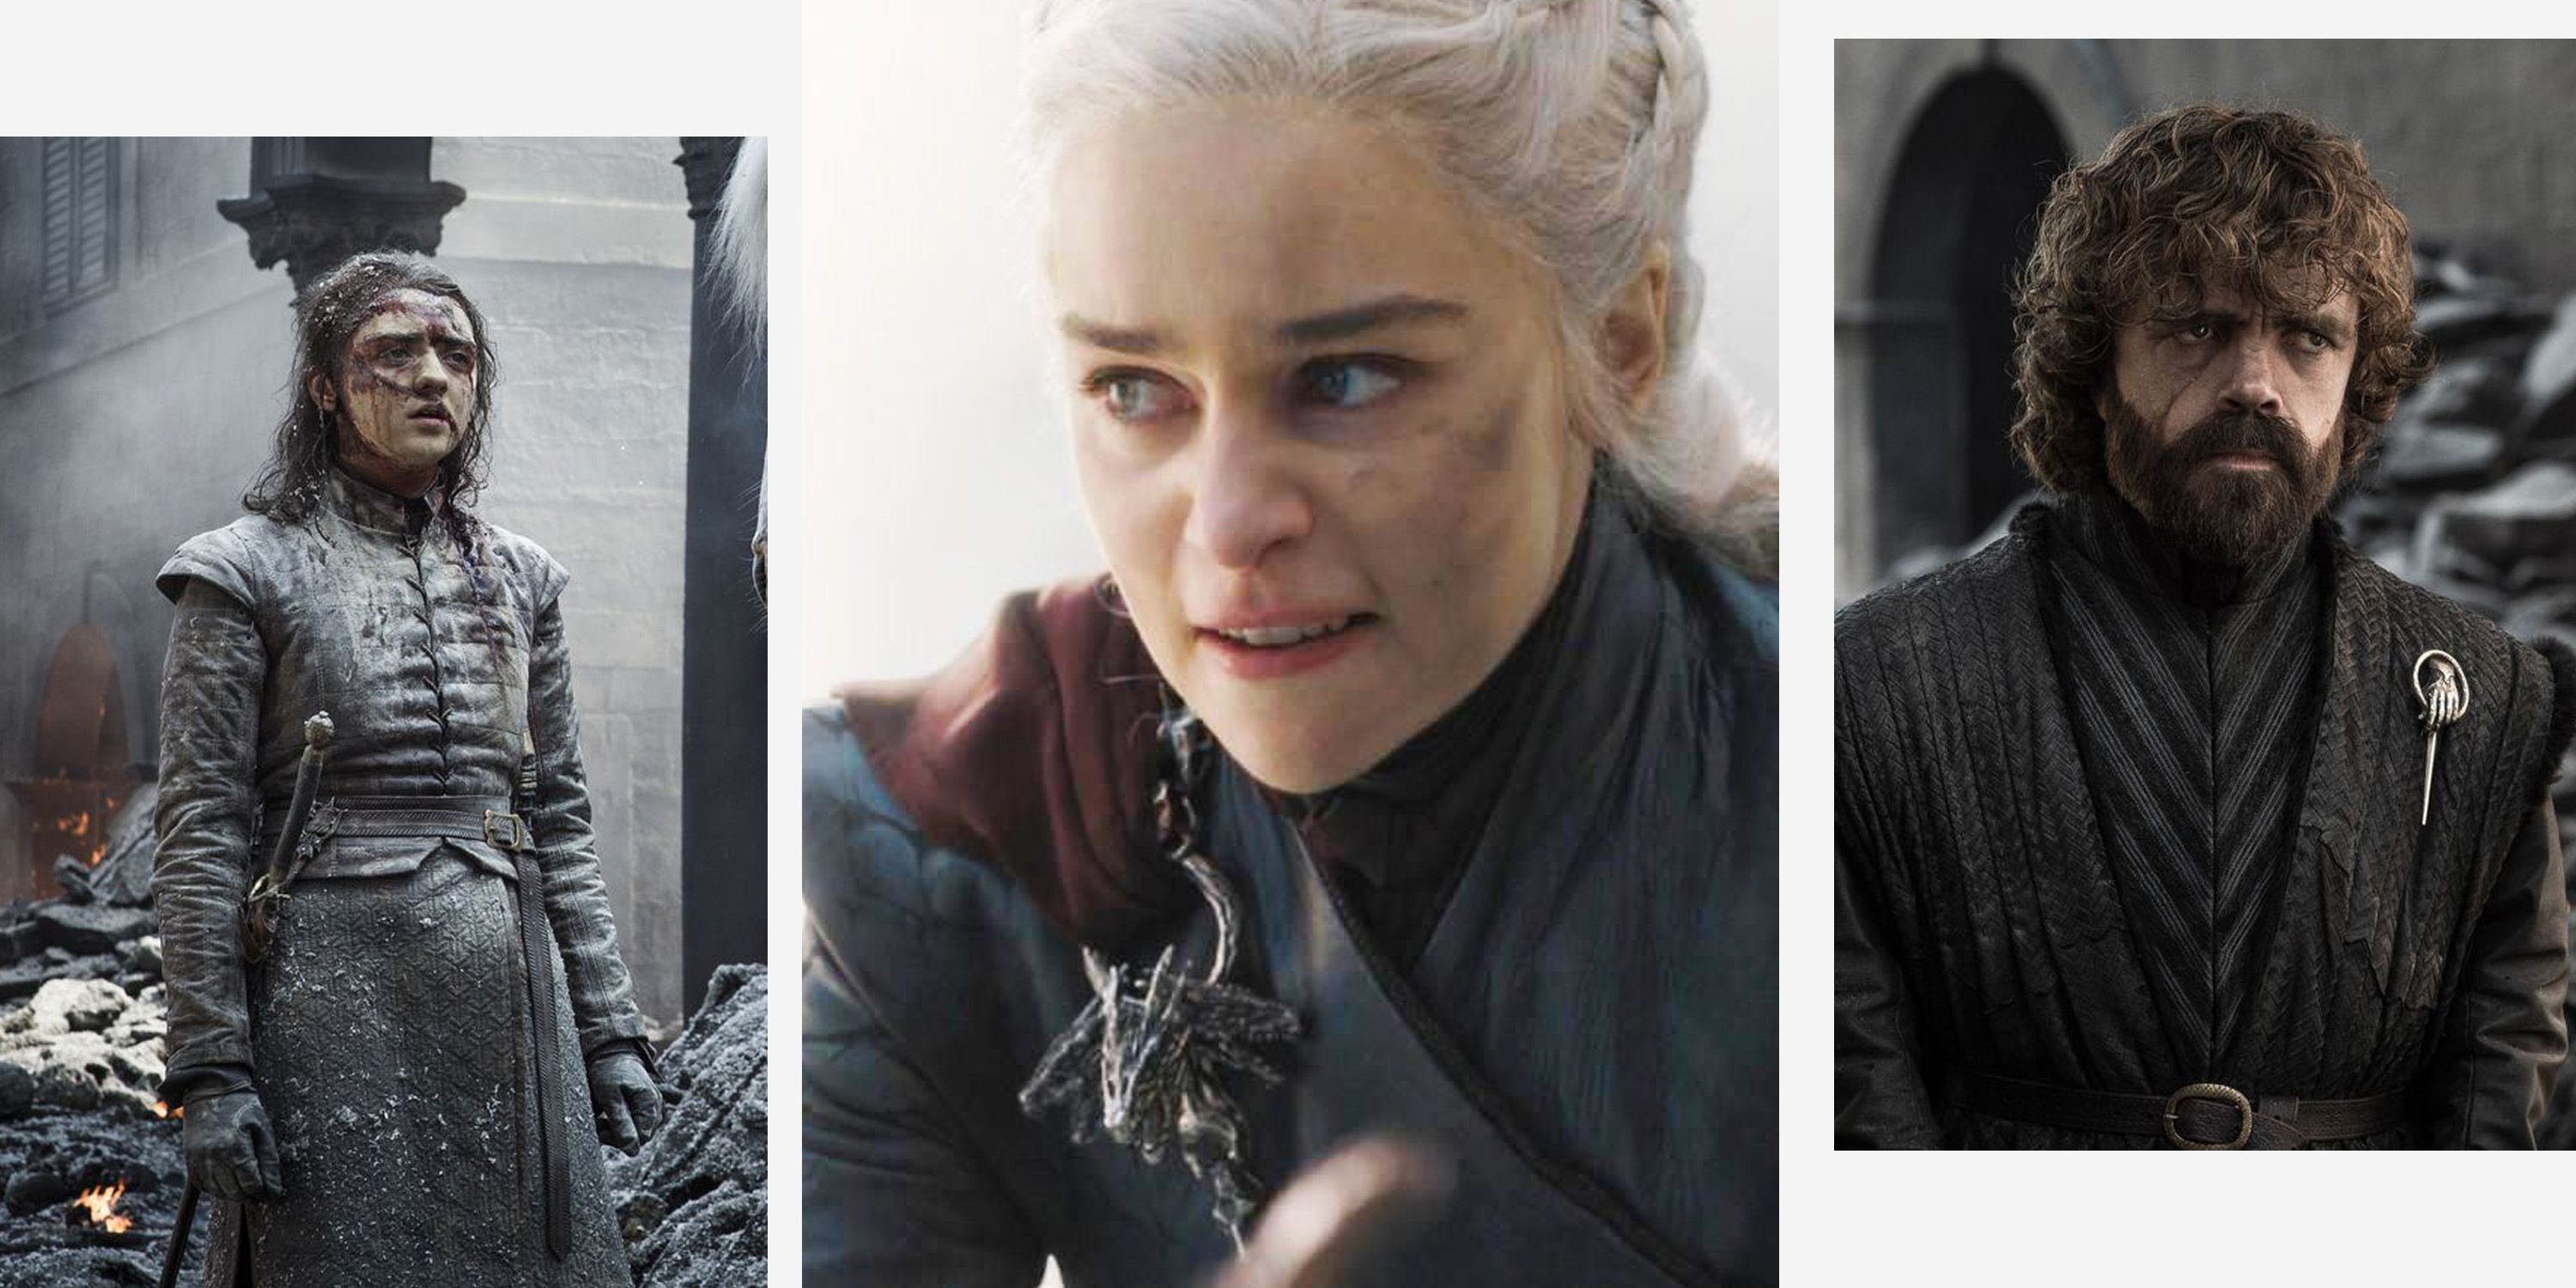 A Definitive Guide to Who's Probably Dying in the Final Episode of Game of Thrones